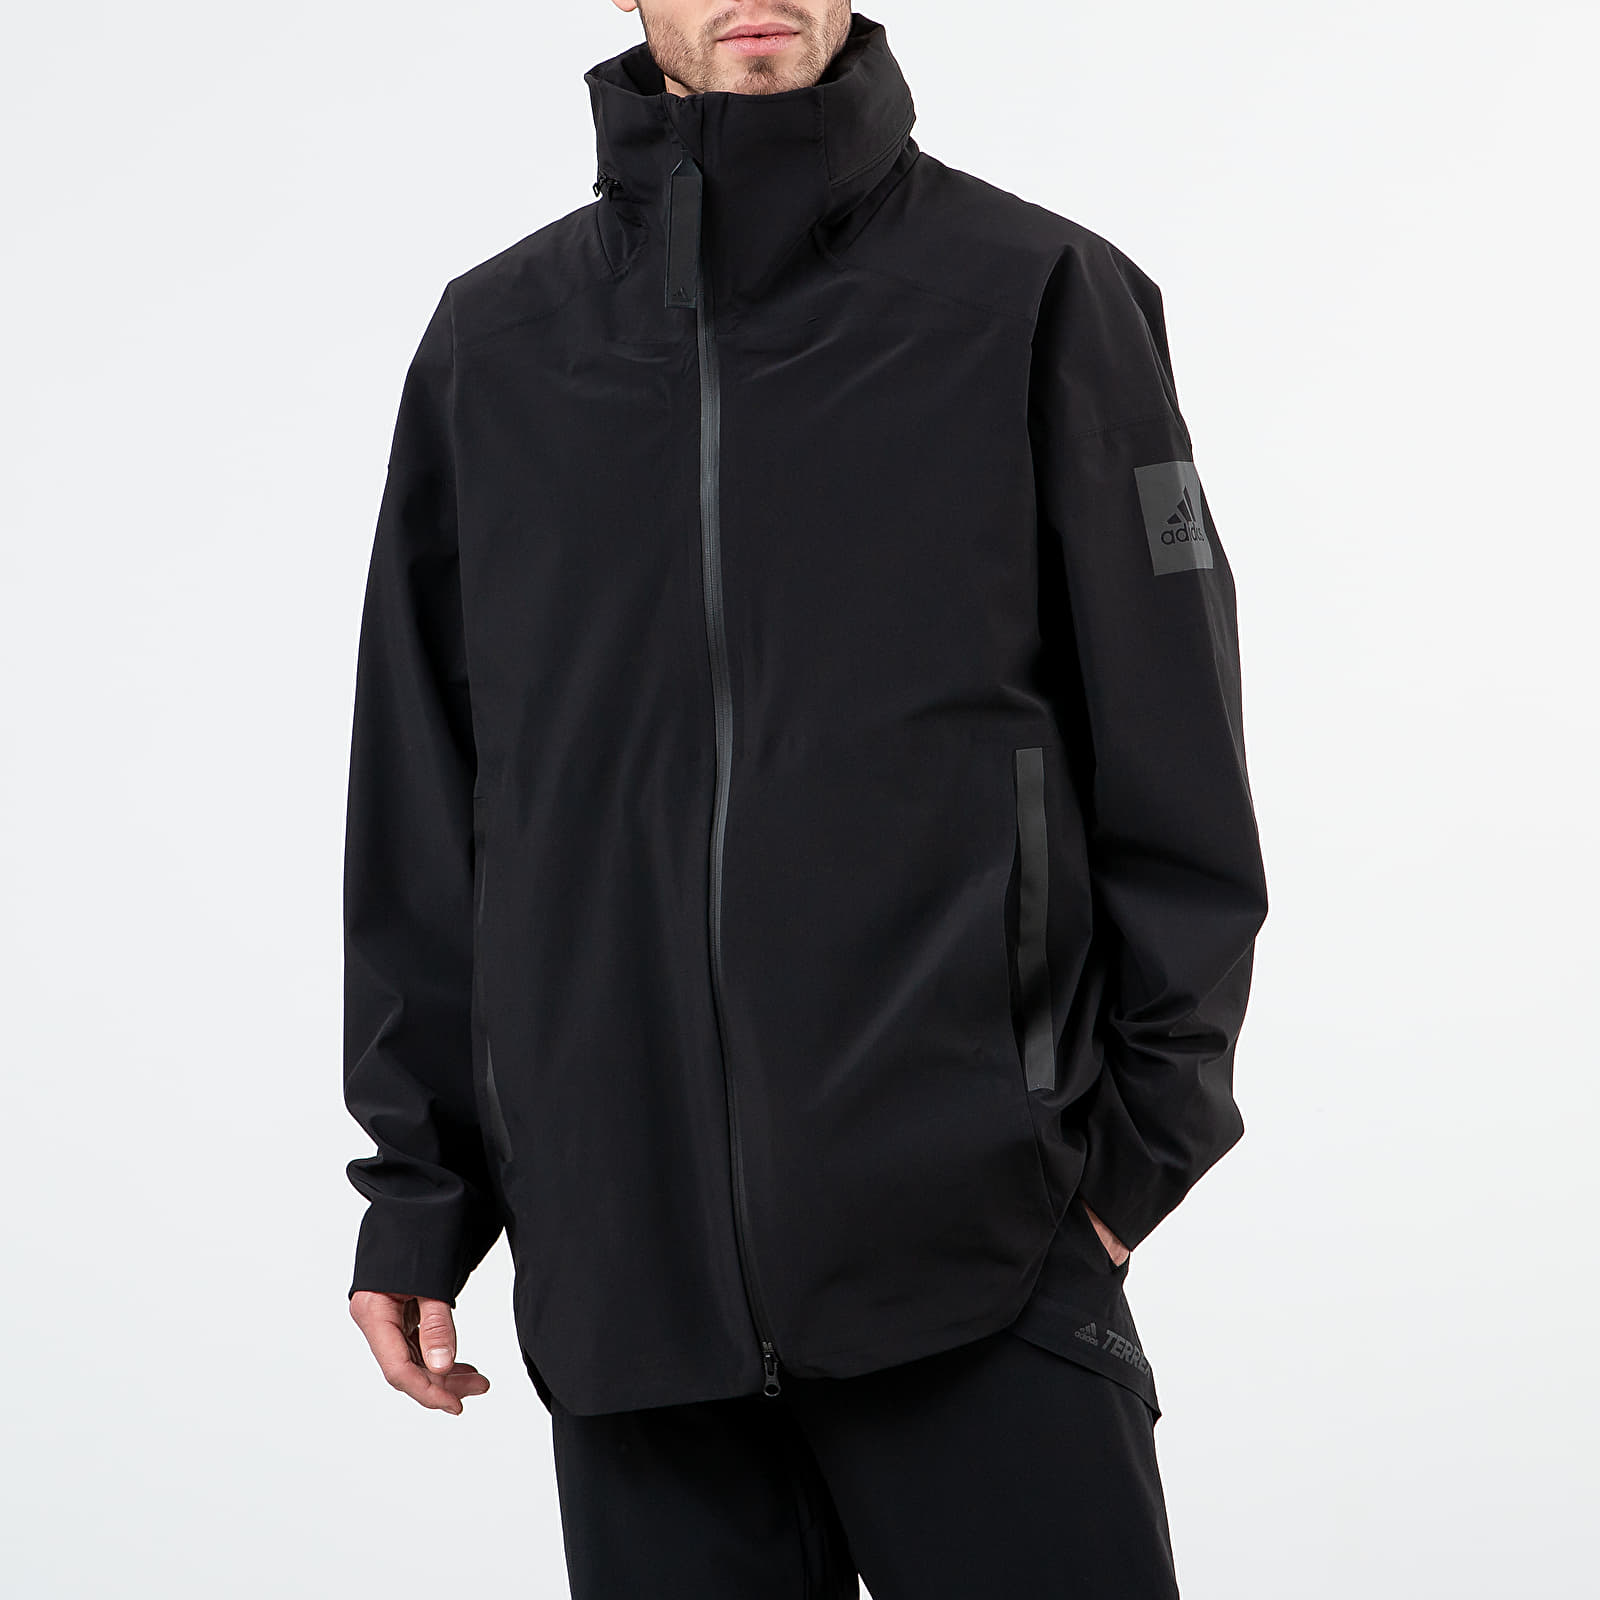 Bundy adidas Myshelter 3in1 Jacket Black/ Black